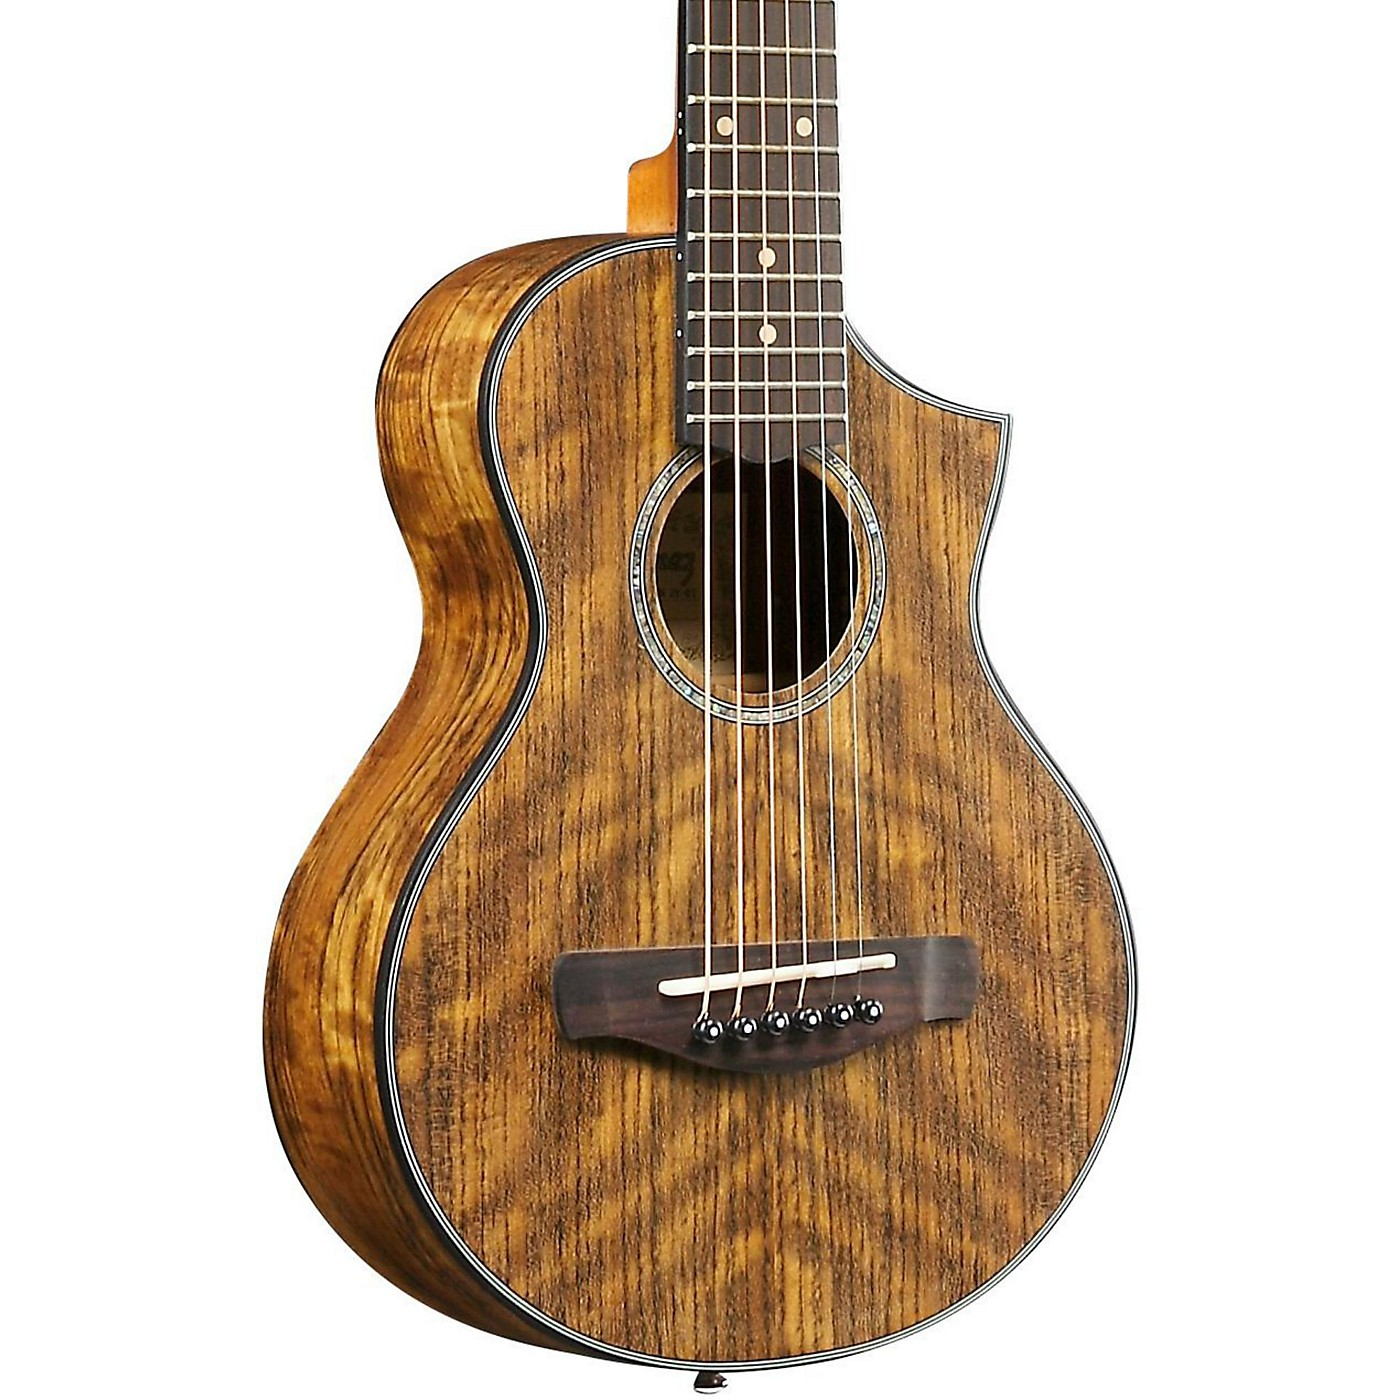 Ibanez EWP14OPN Exotic Wood Piccolo Acoustic Guitar thumbnail